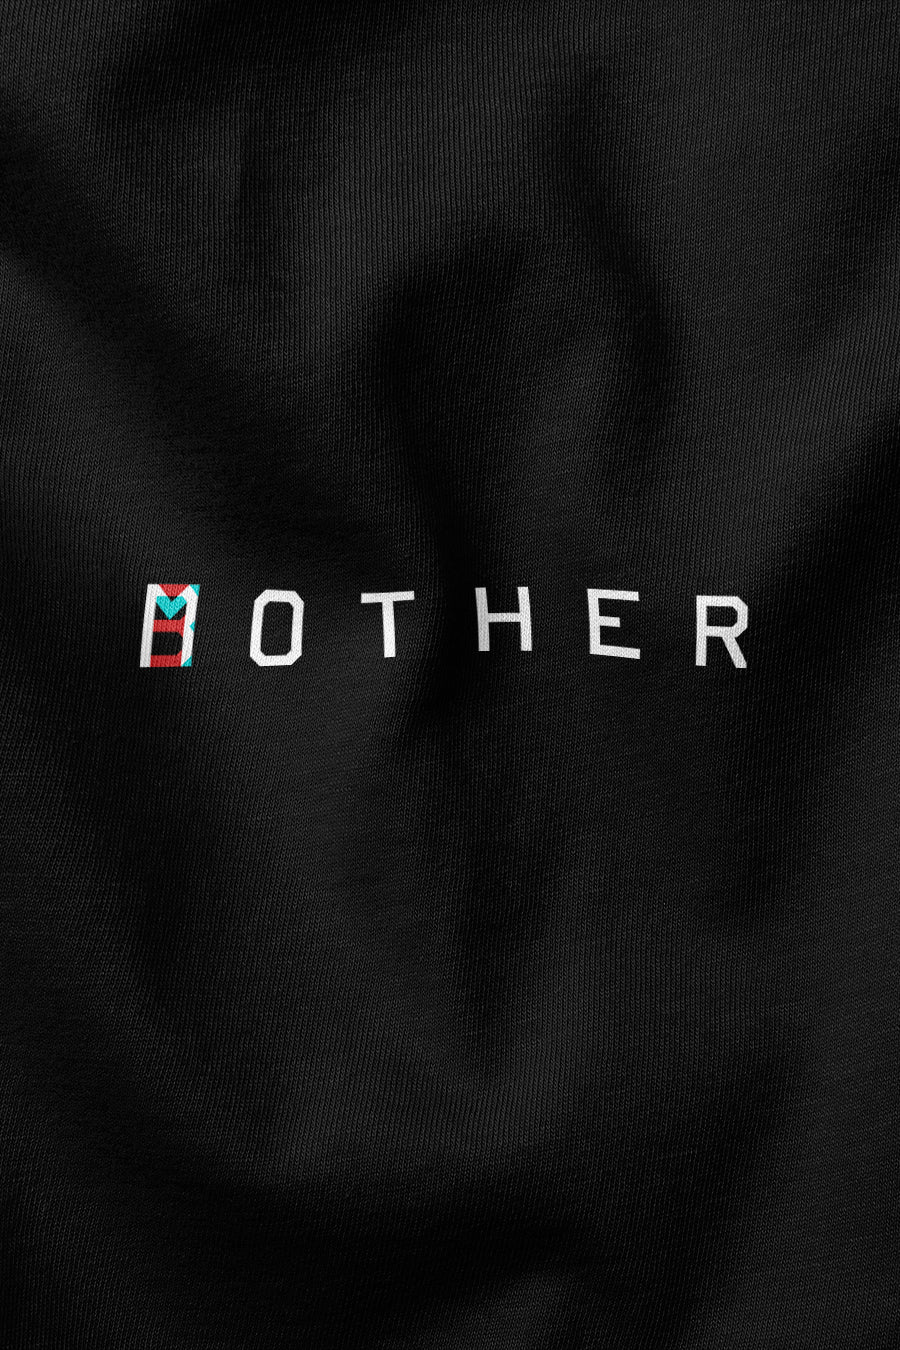 Mother / Bother